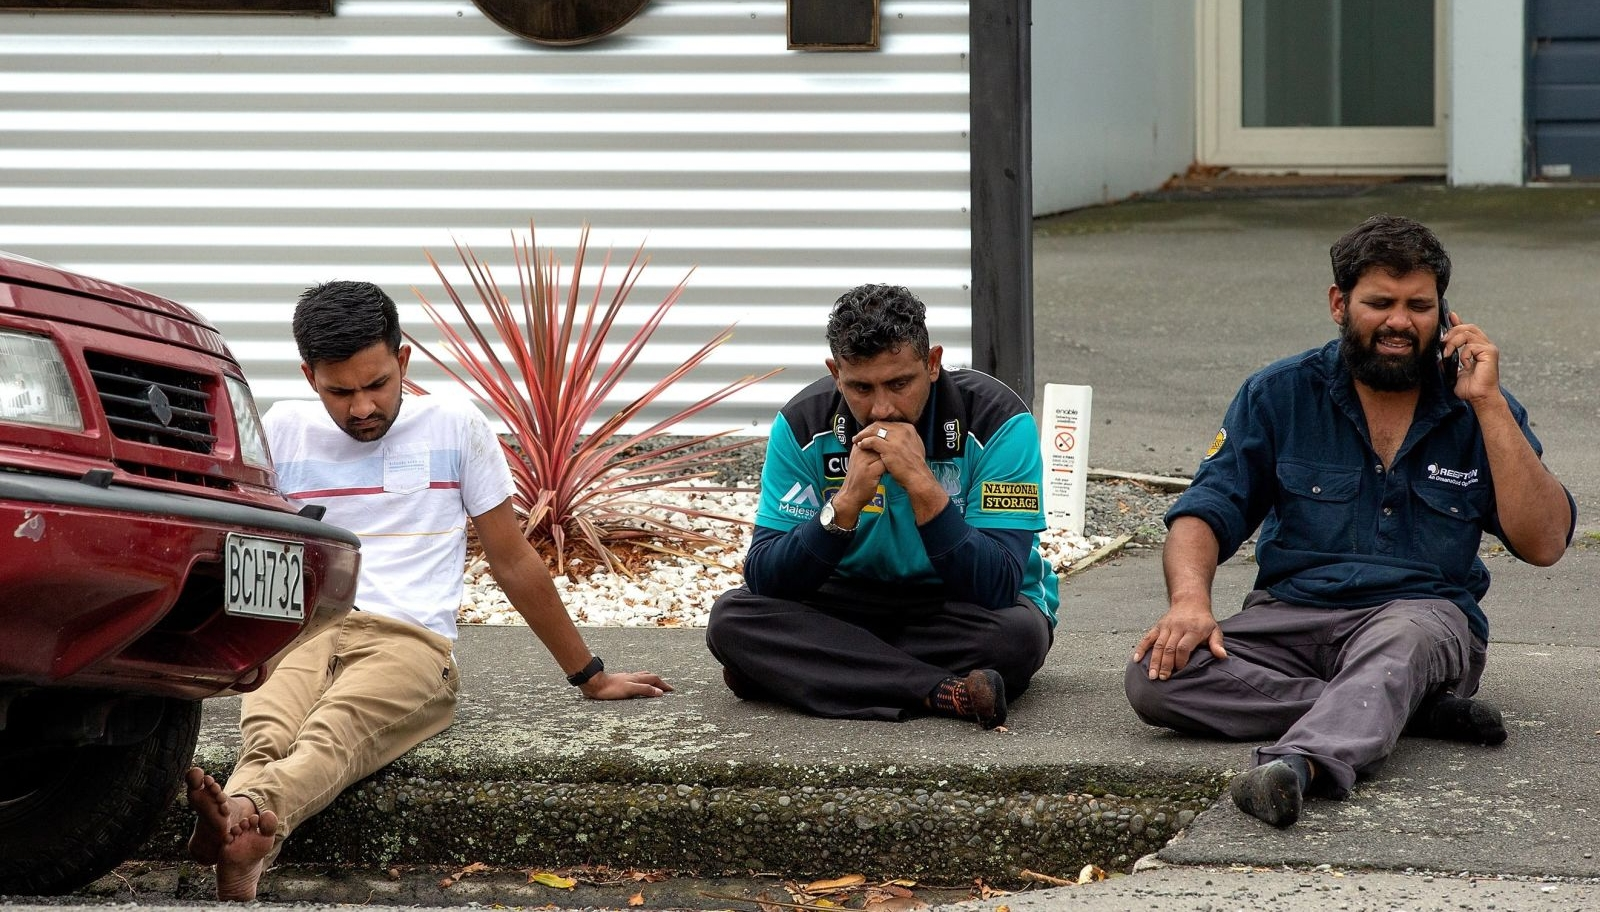 Christchurch was put into lockdown as events unfolded (Photo via BBC)